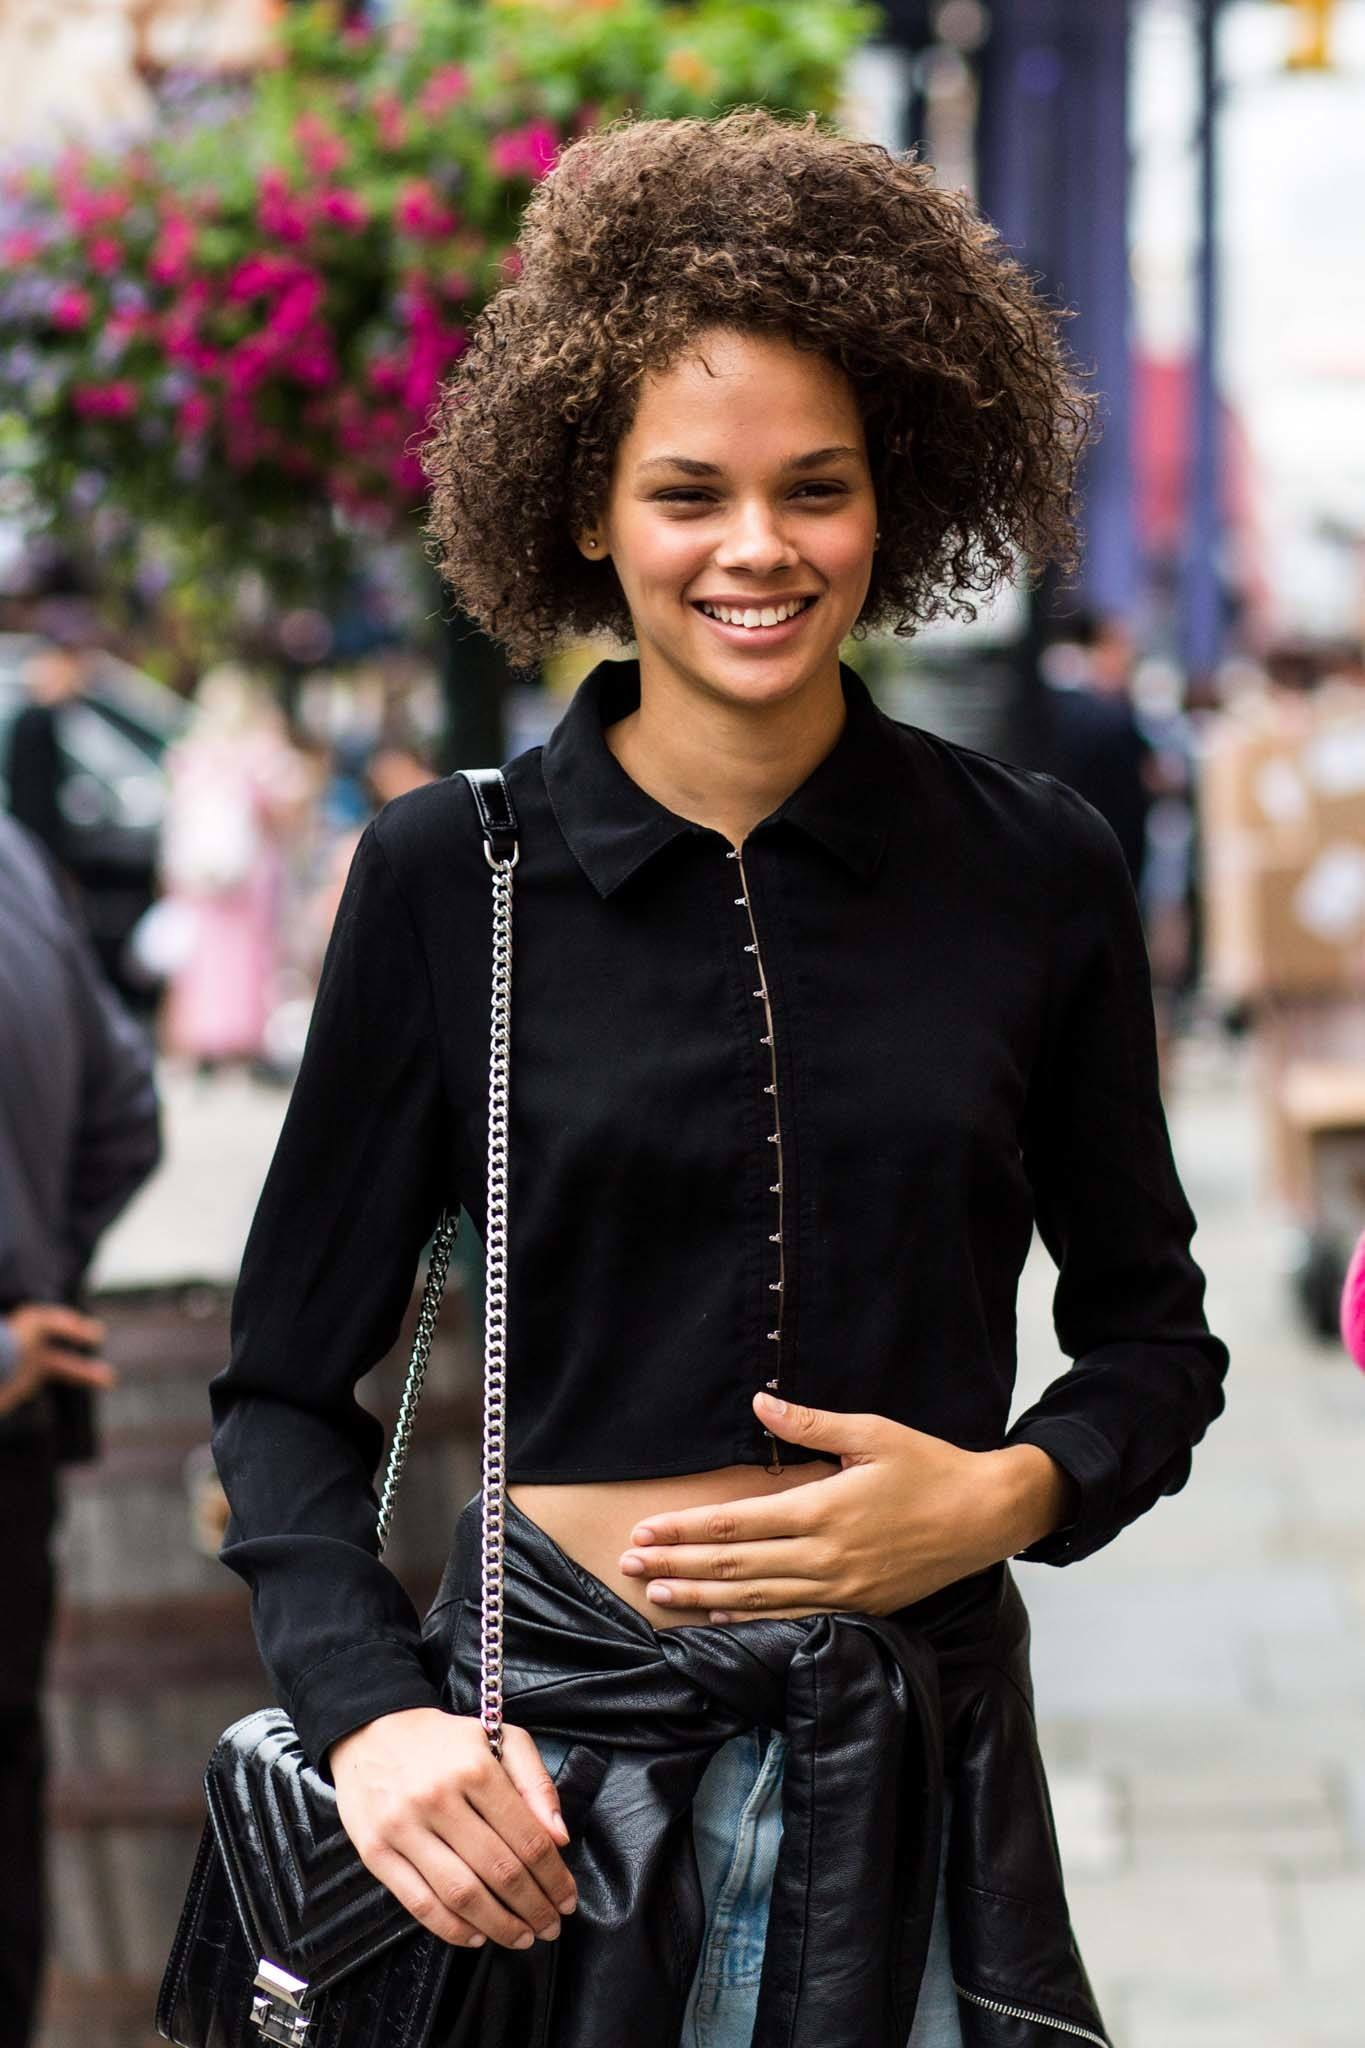 afro hair inspo: wash and go curls